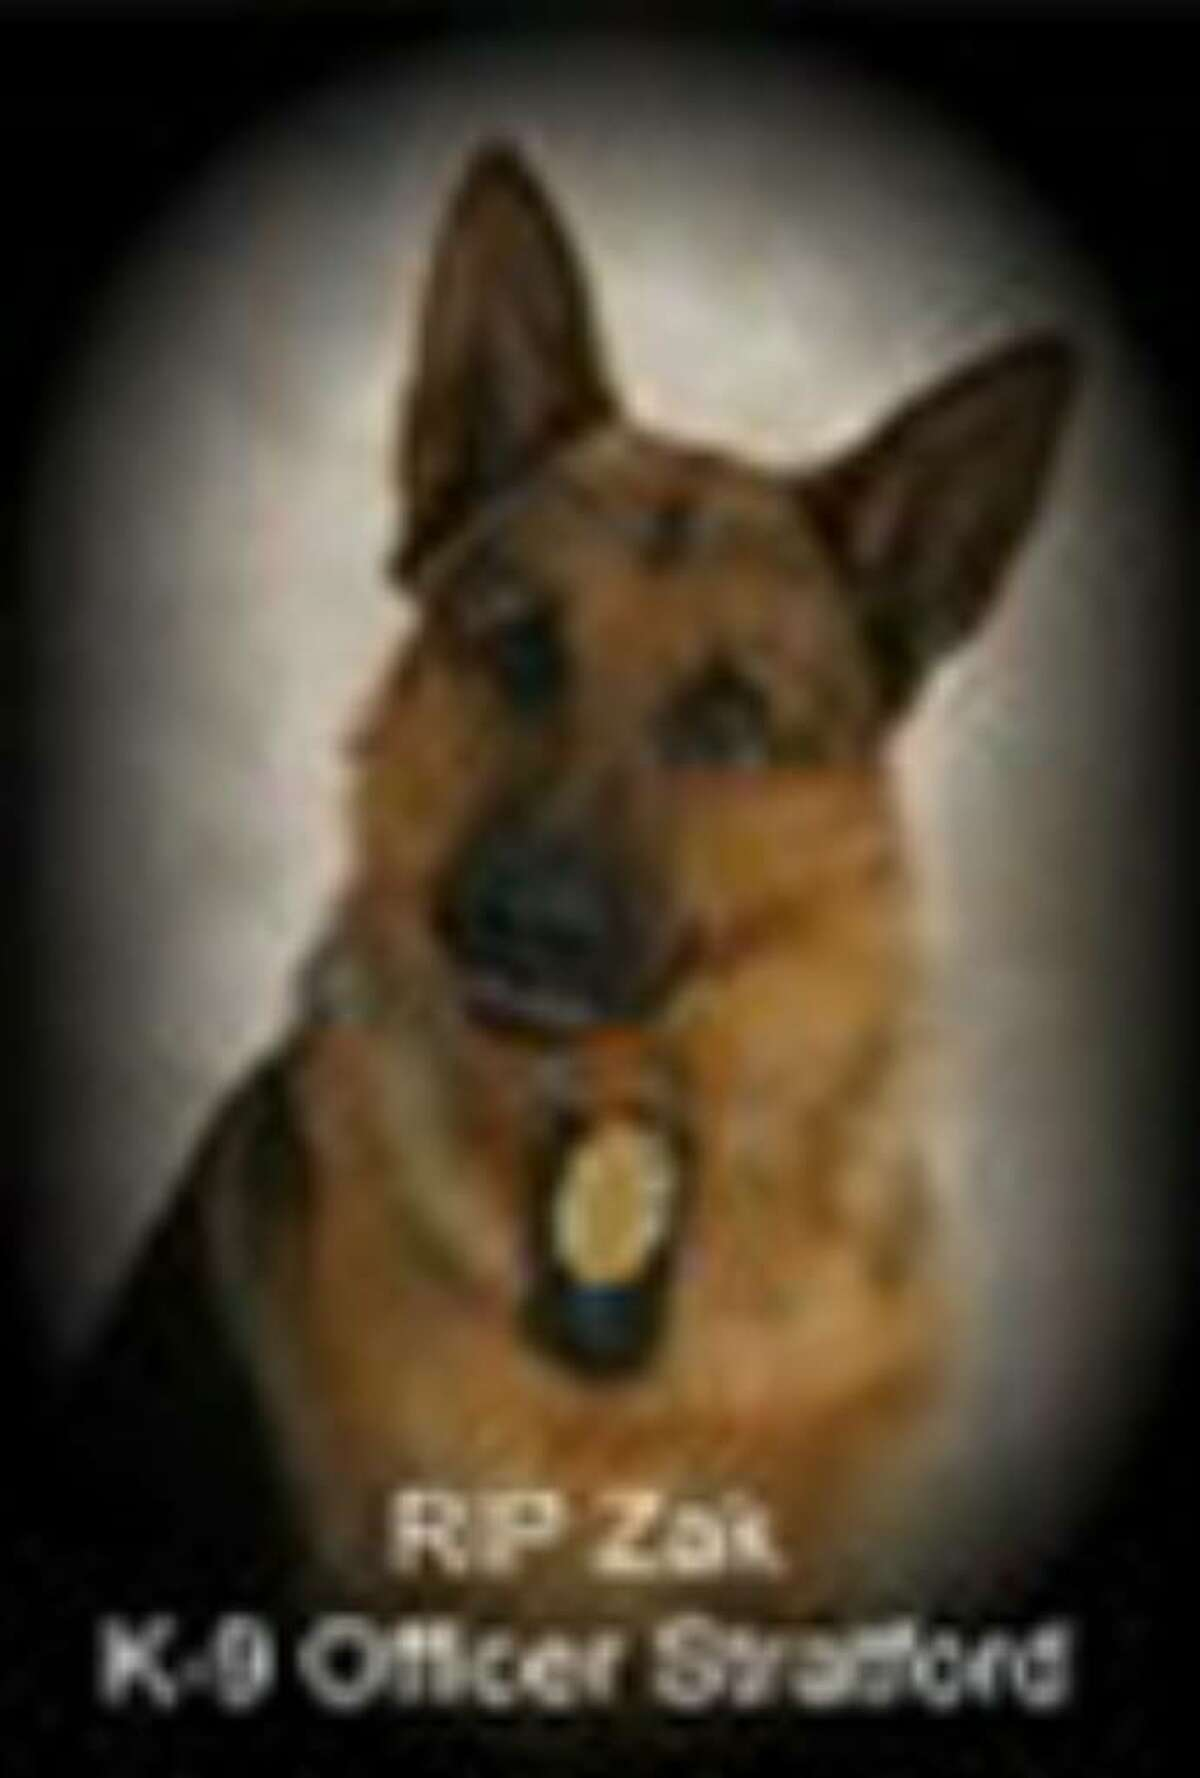 From the memorial on the Facebook page of Zak, the Stratford K-9